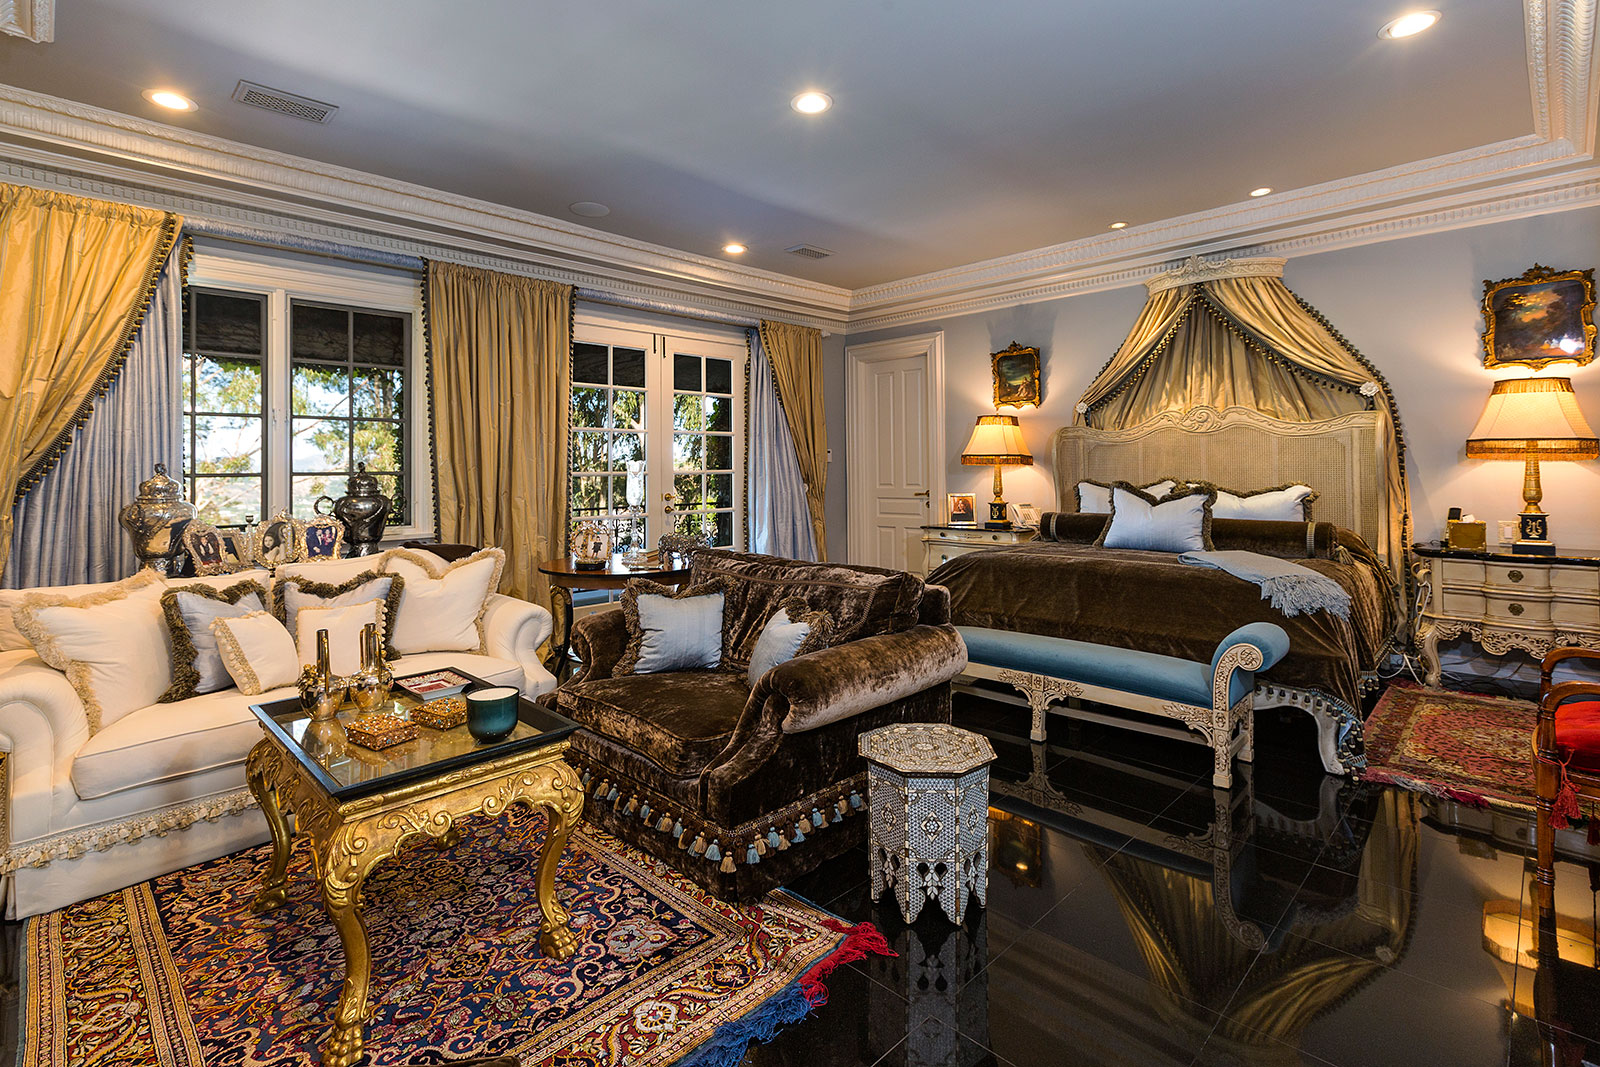 23 - The Summit at Beverly Hills, 12001 Crest Court | FINEST RESIDENCES